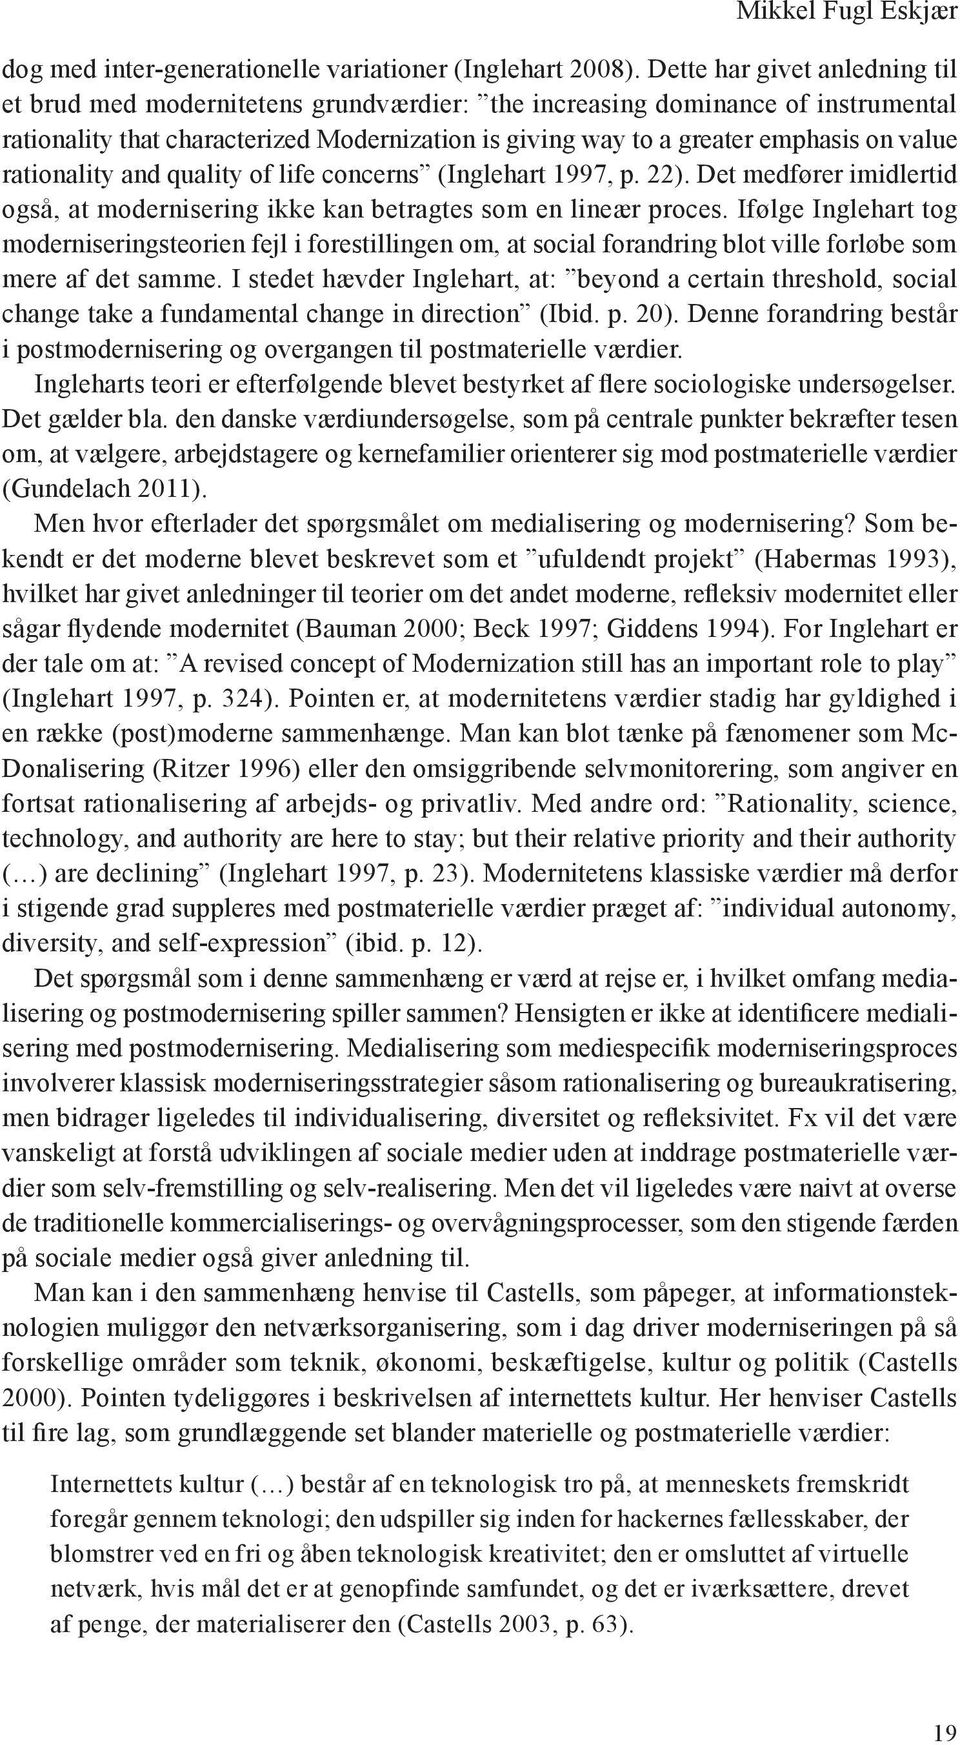 value rationality and quality of life concerns (Inglehart 1997, p. 22). Det medfører imidlertid også, at modernisering ikke kan betragtes som en lineær proces.